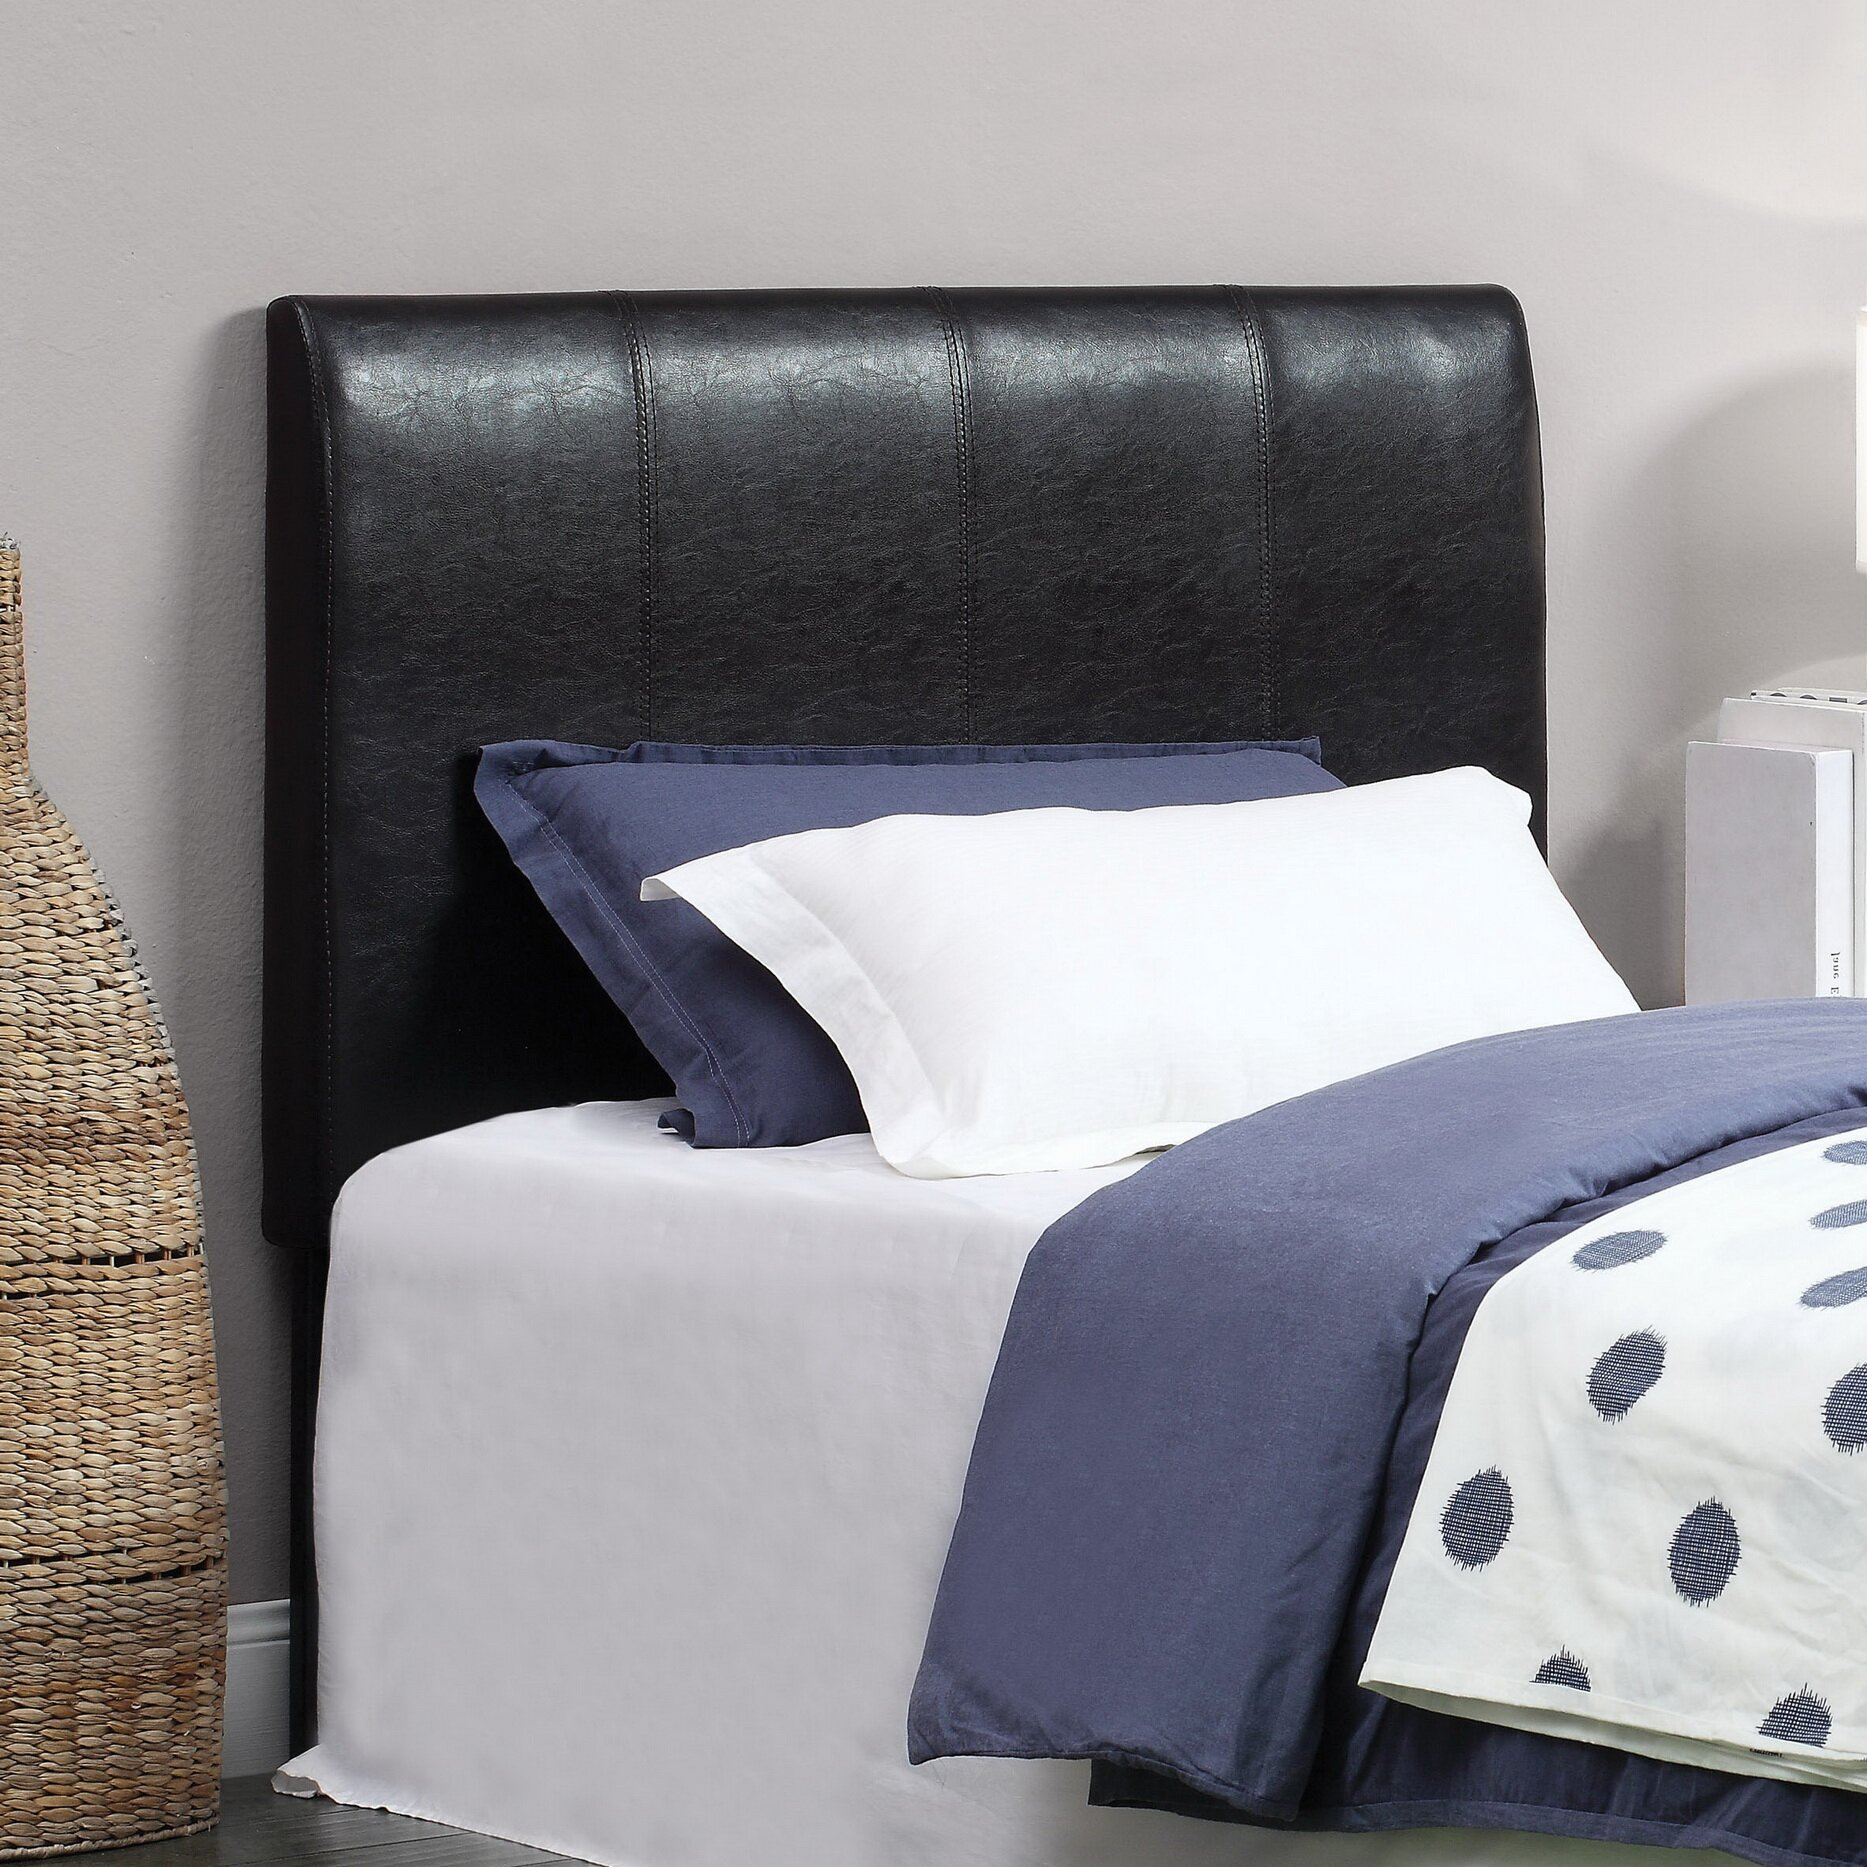 Hokku Designs Reverie Upholstered Headboard Reviews